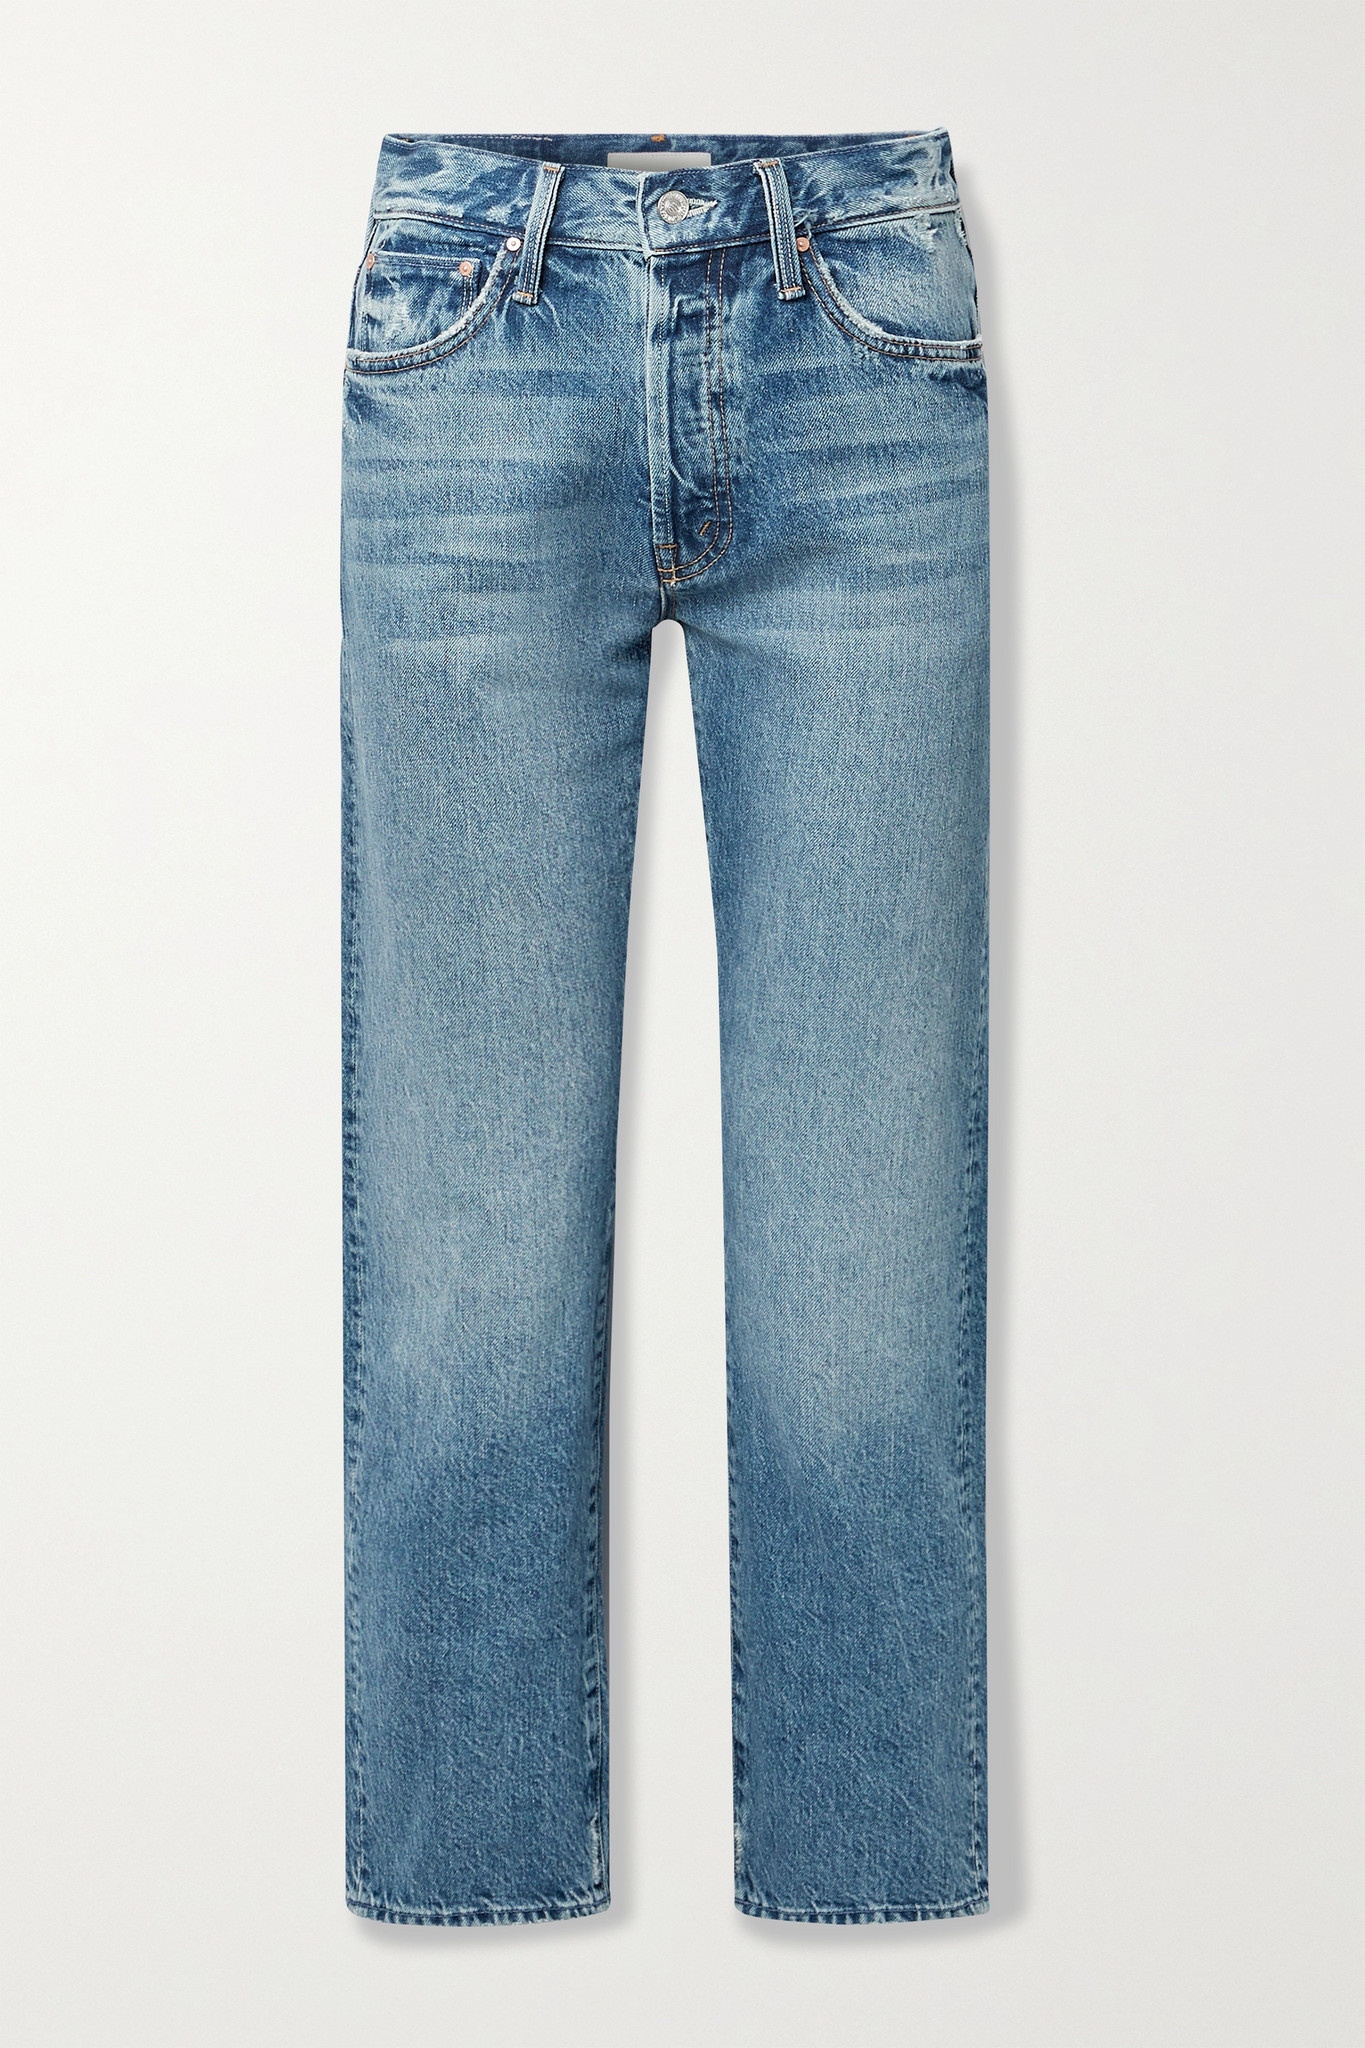 MOTHER - Hiker Hover Distressed High-rise Straight-leg Jeans - Blue - 31